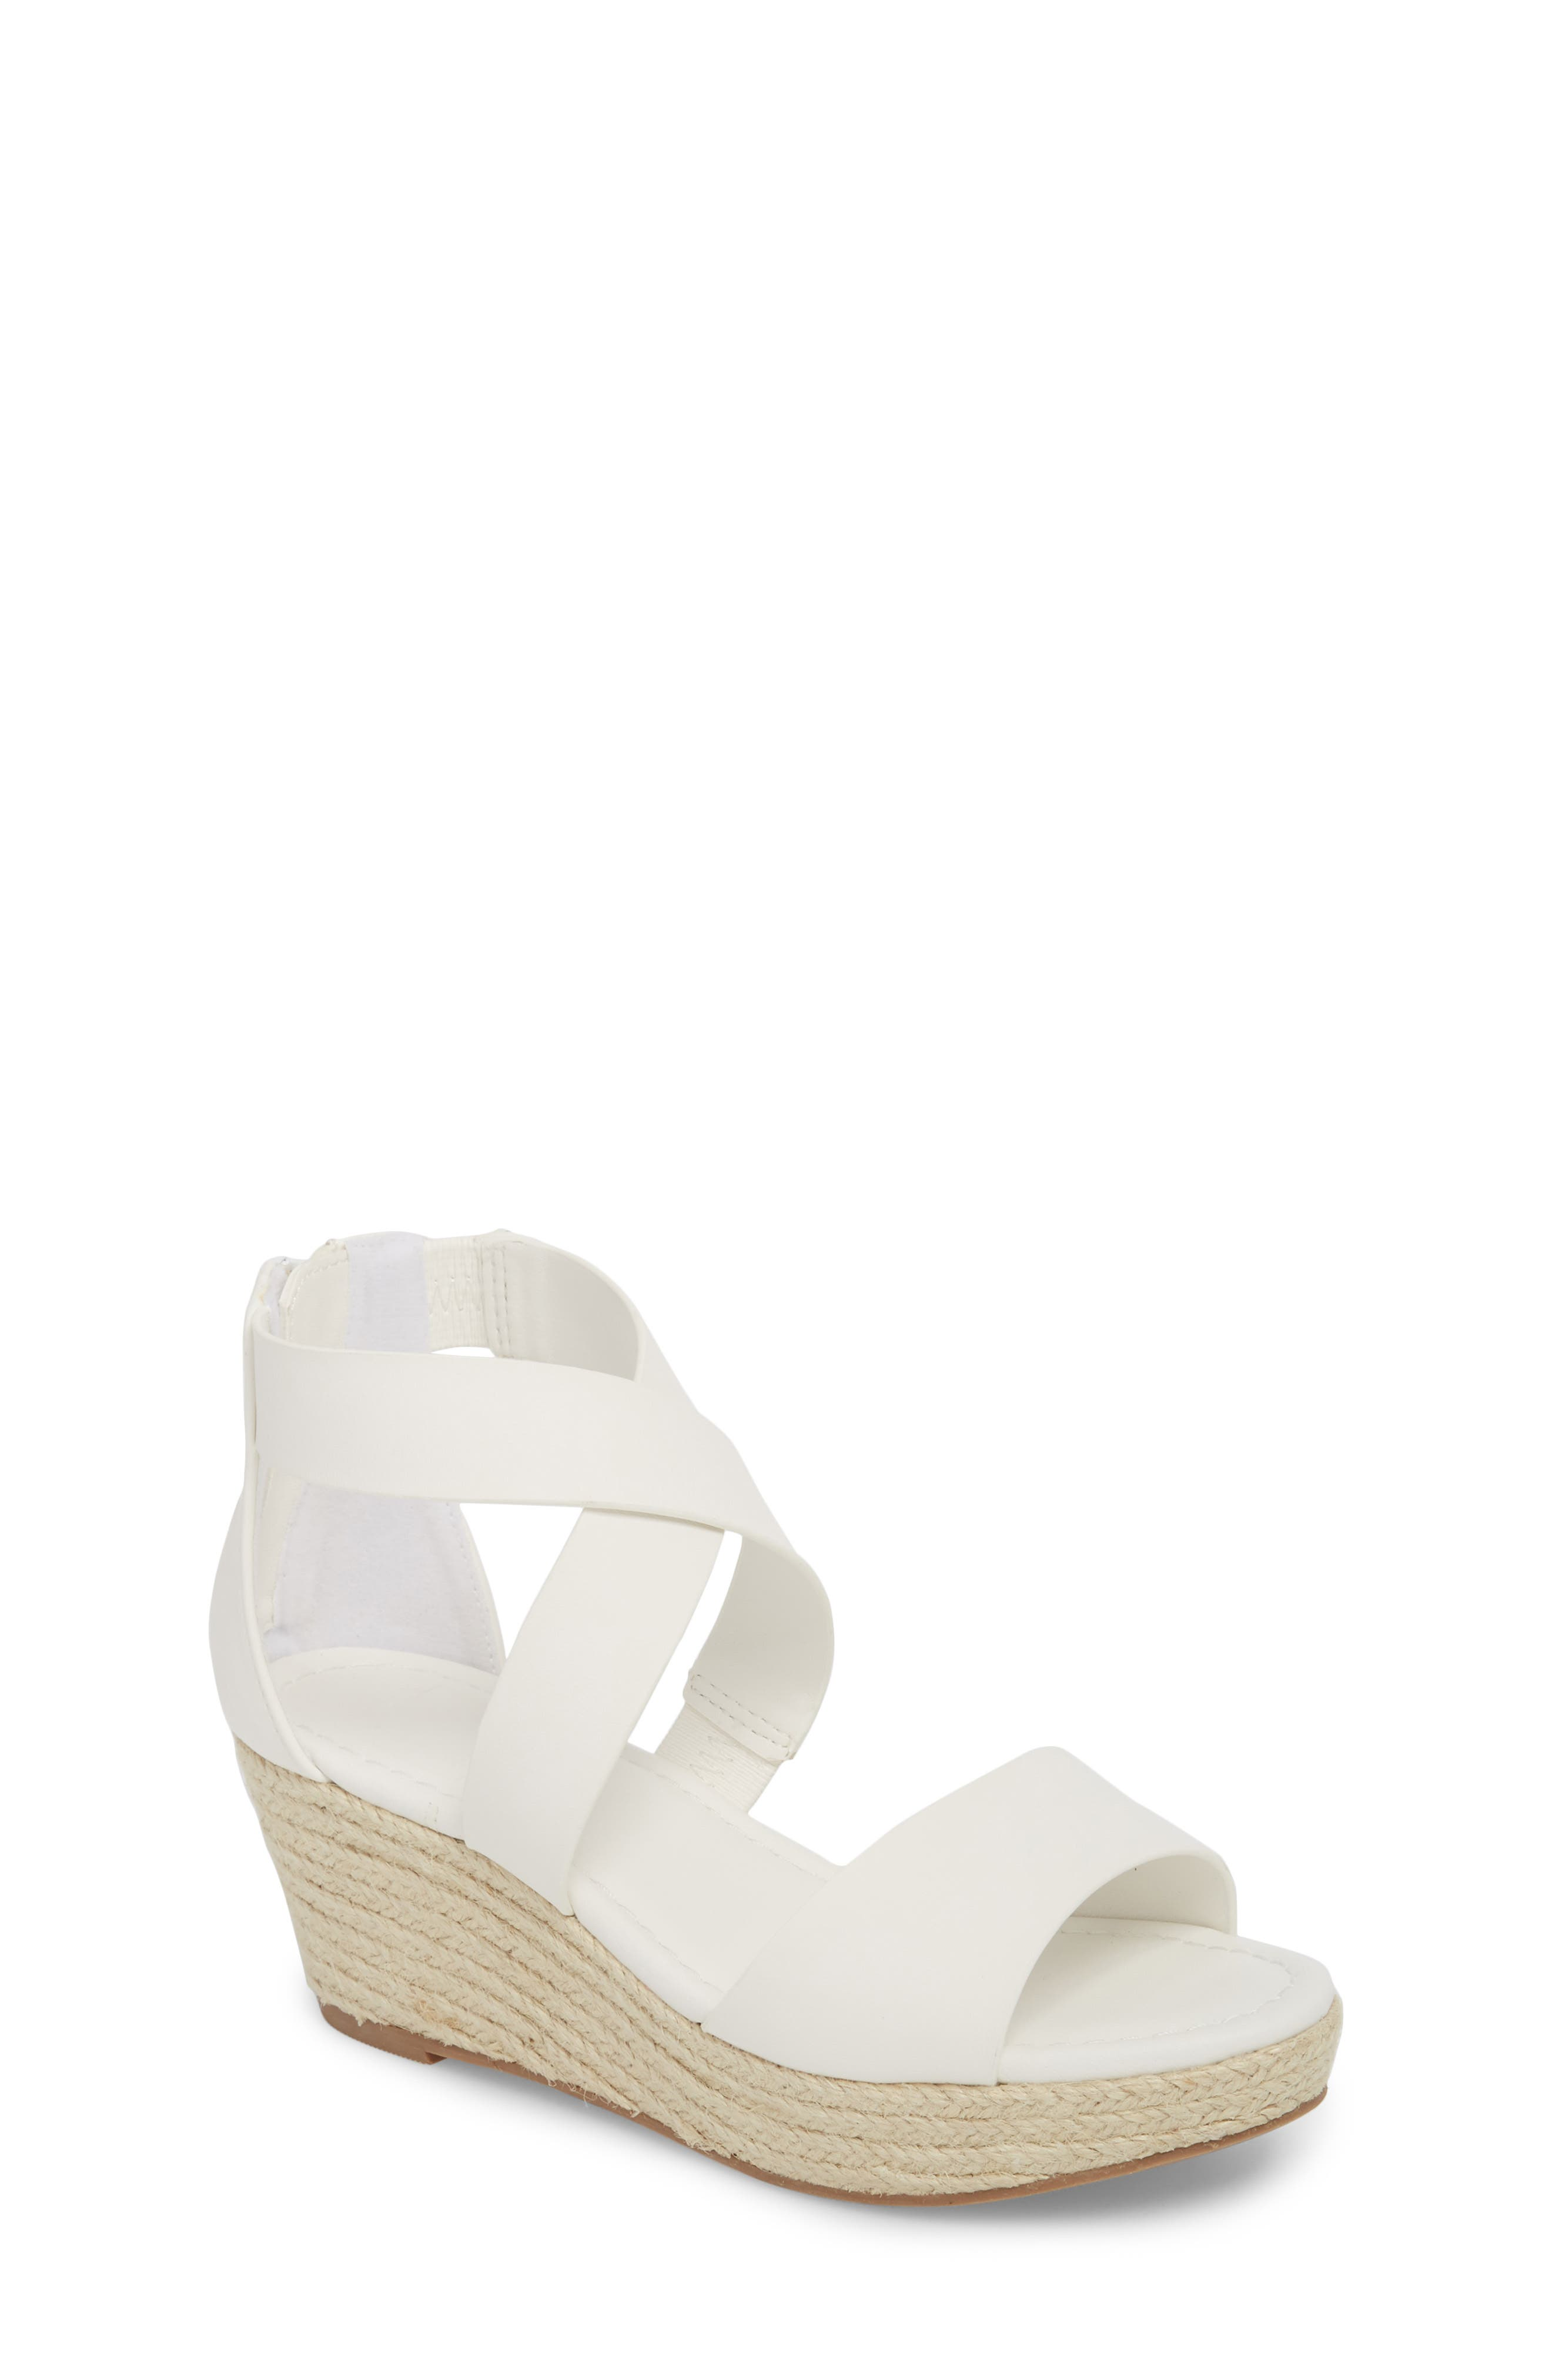 DOLCE VITA,                             Wilma Platform Wedge Sandal,                             Main thumbnail 1, color,                             100